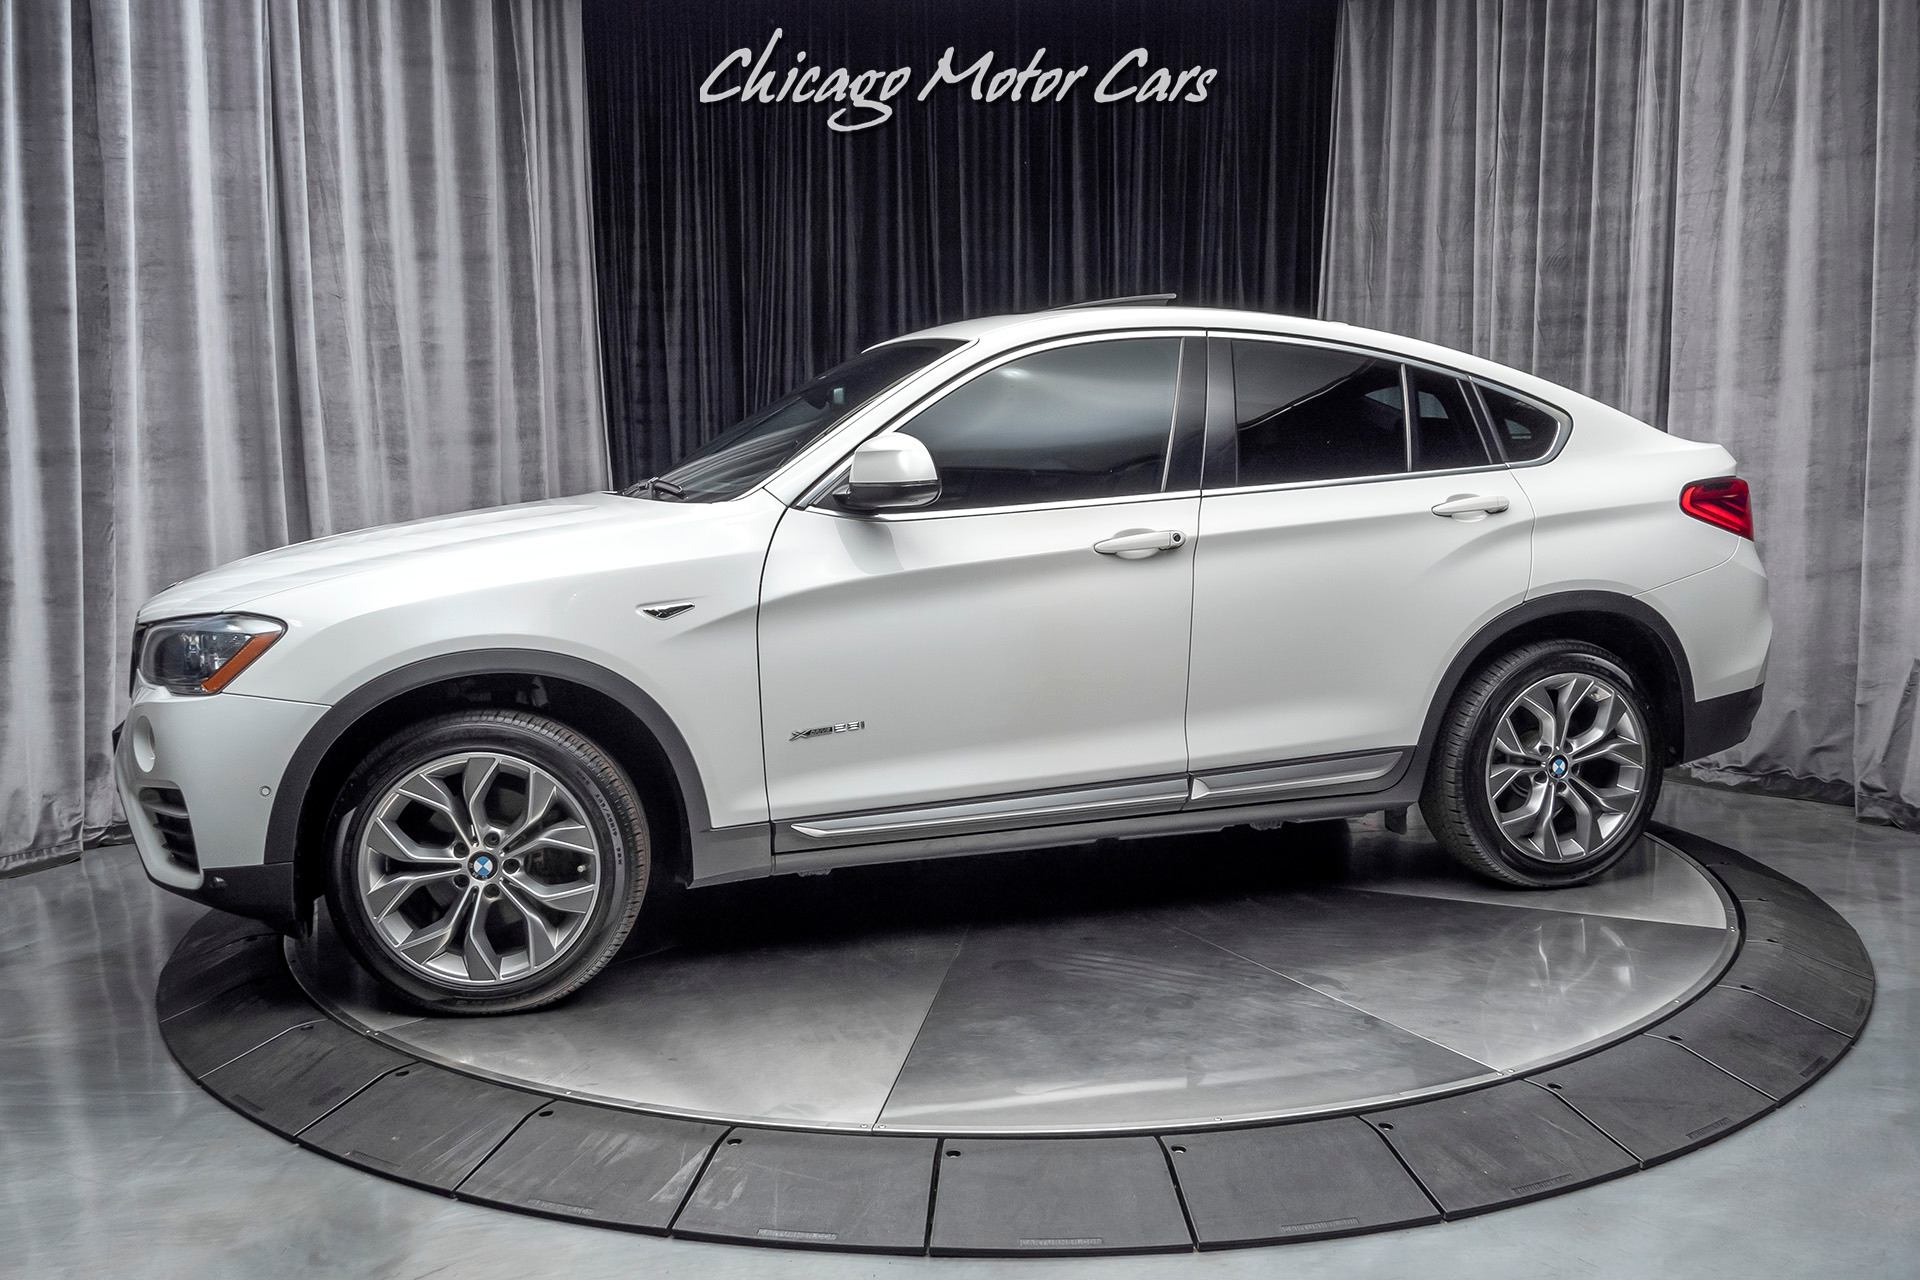 Used 2018 Bmw X4 Xdrive28i 53k Msrp Driving Assistance Pkg For Sale Special Pricing Chicago Motor Cars Stock 17611